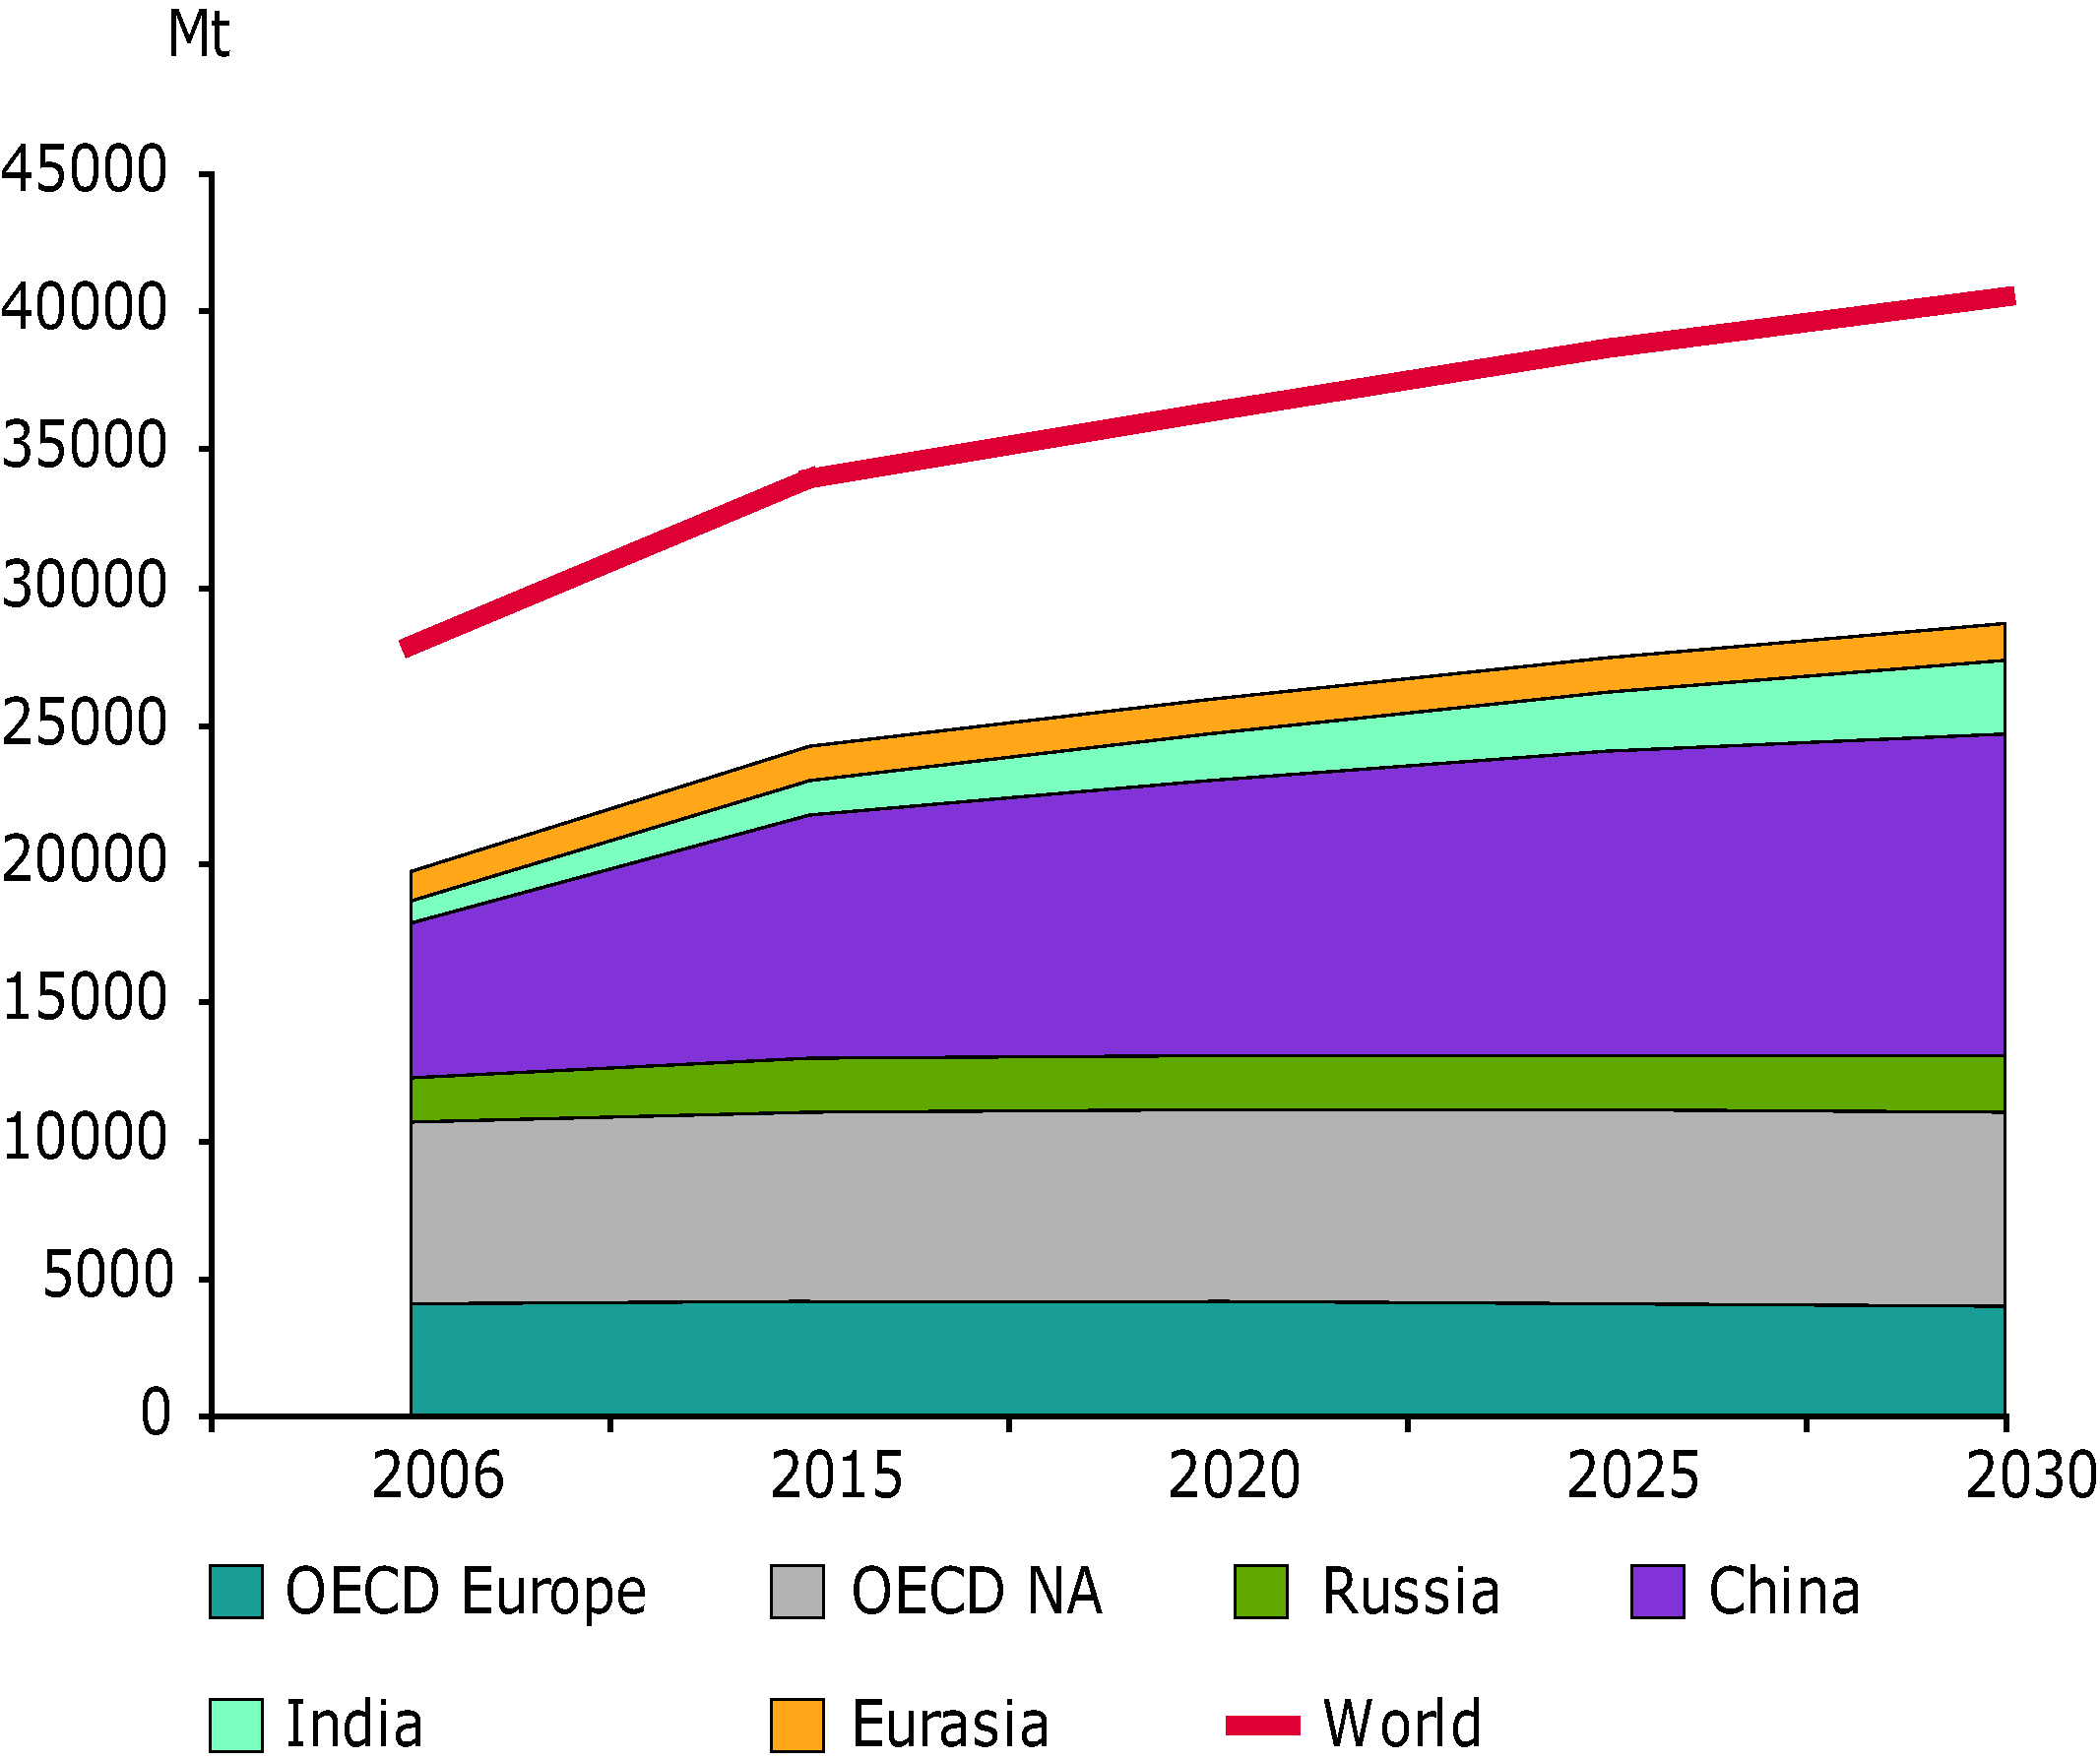 Projections of energy related GHG emissions by region from 2006 t0 2030